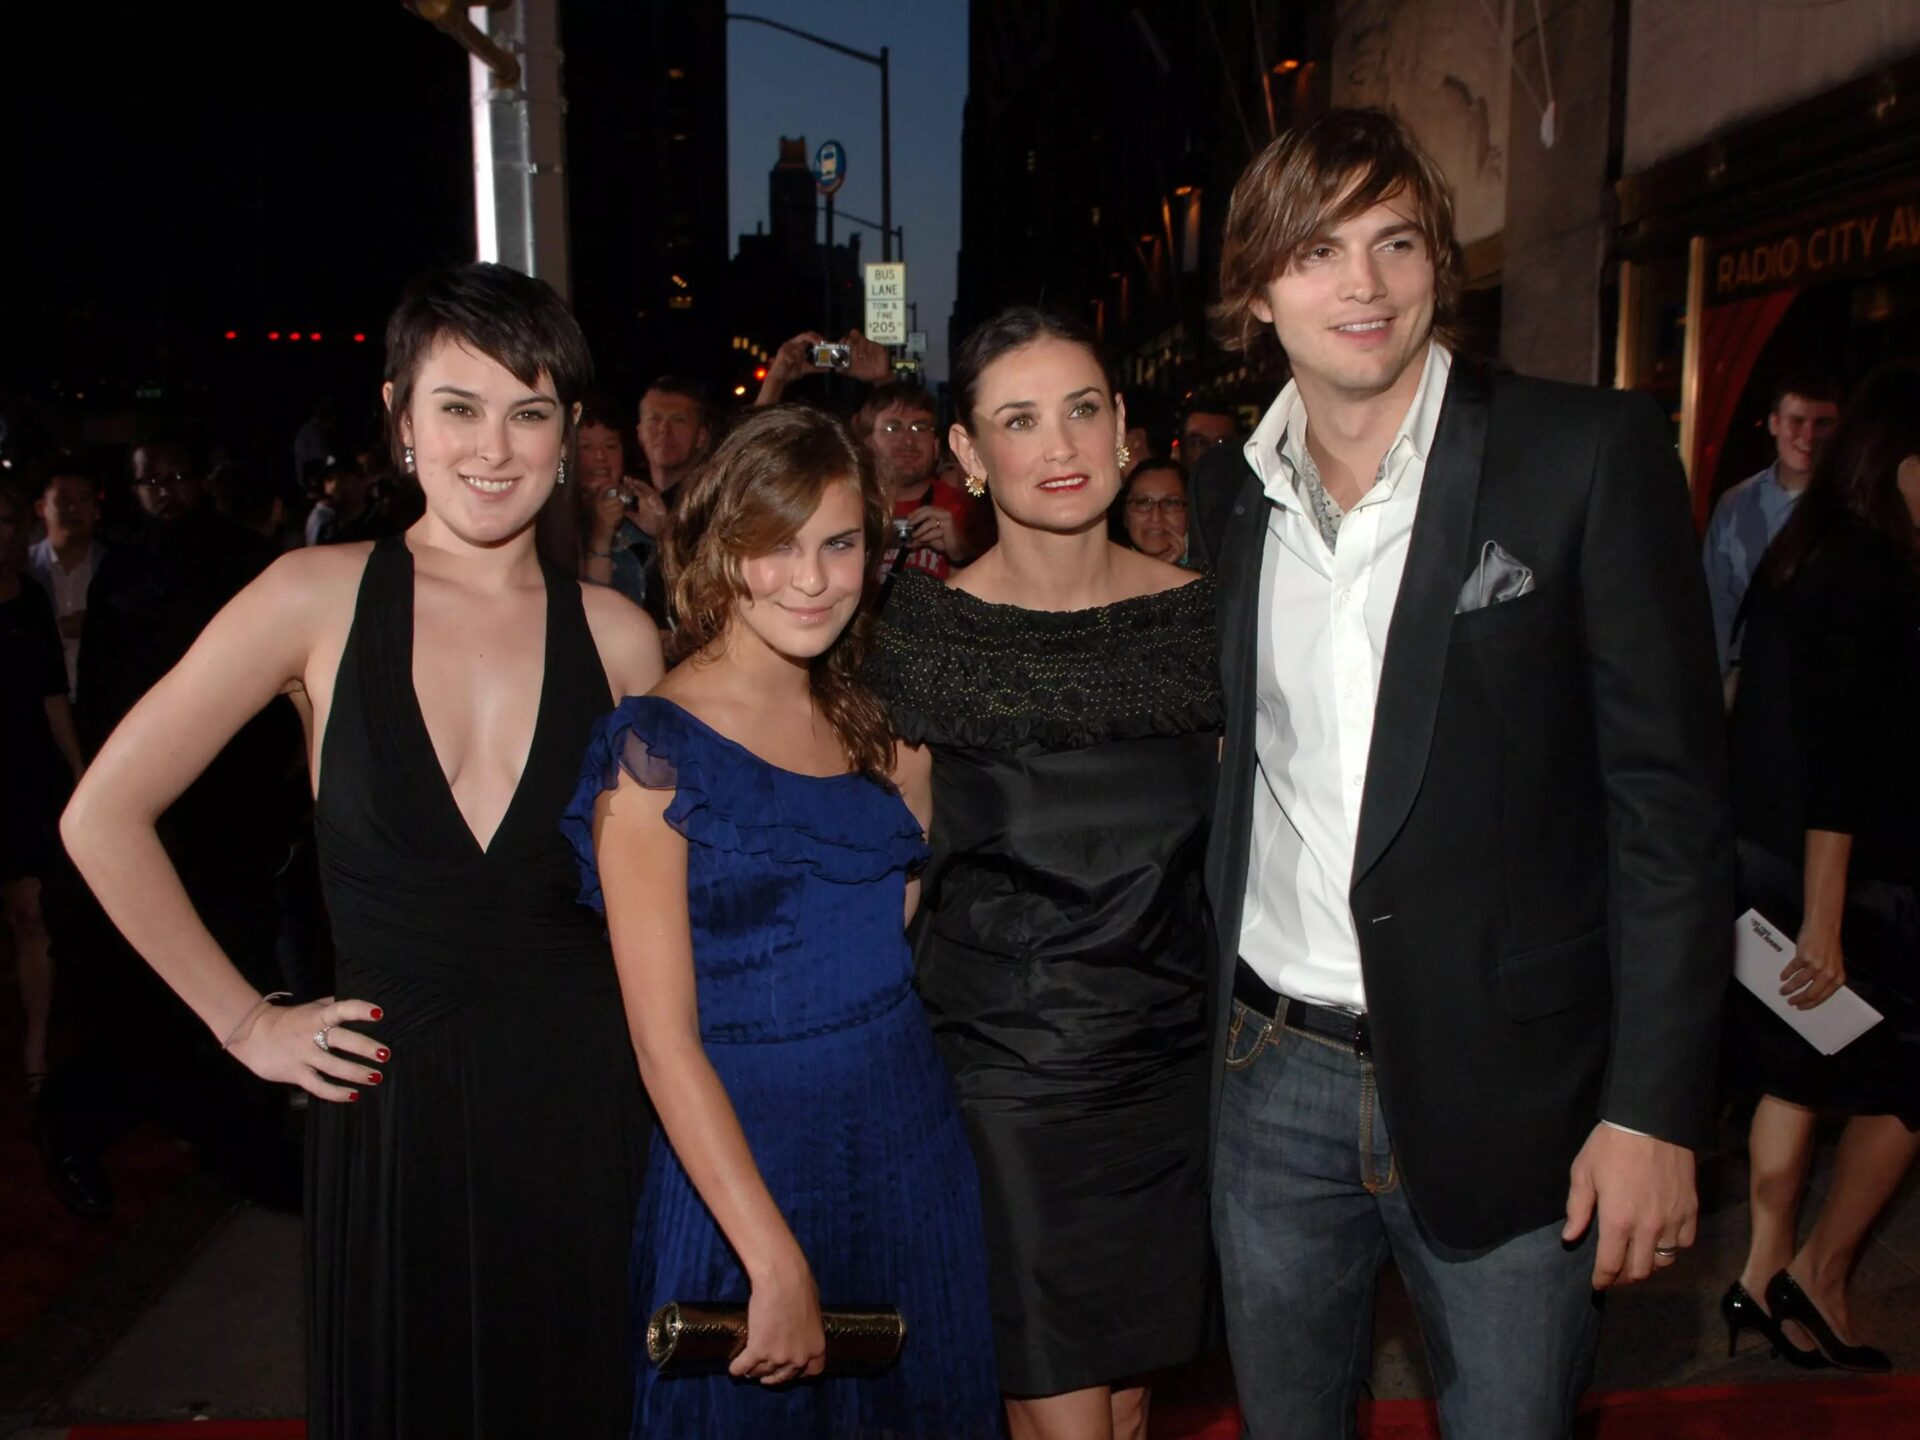 Her Relationship With Kutcher